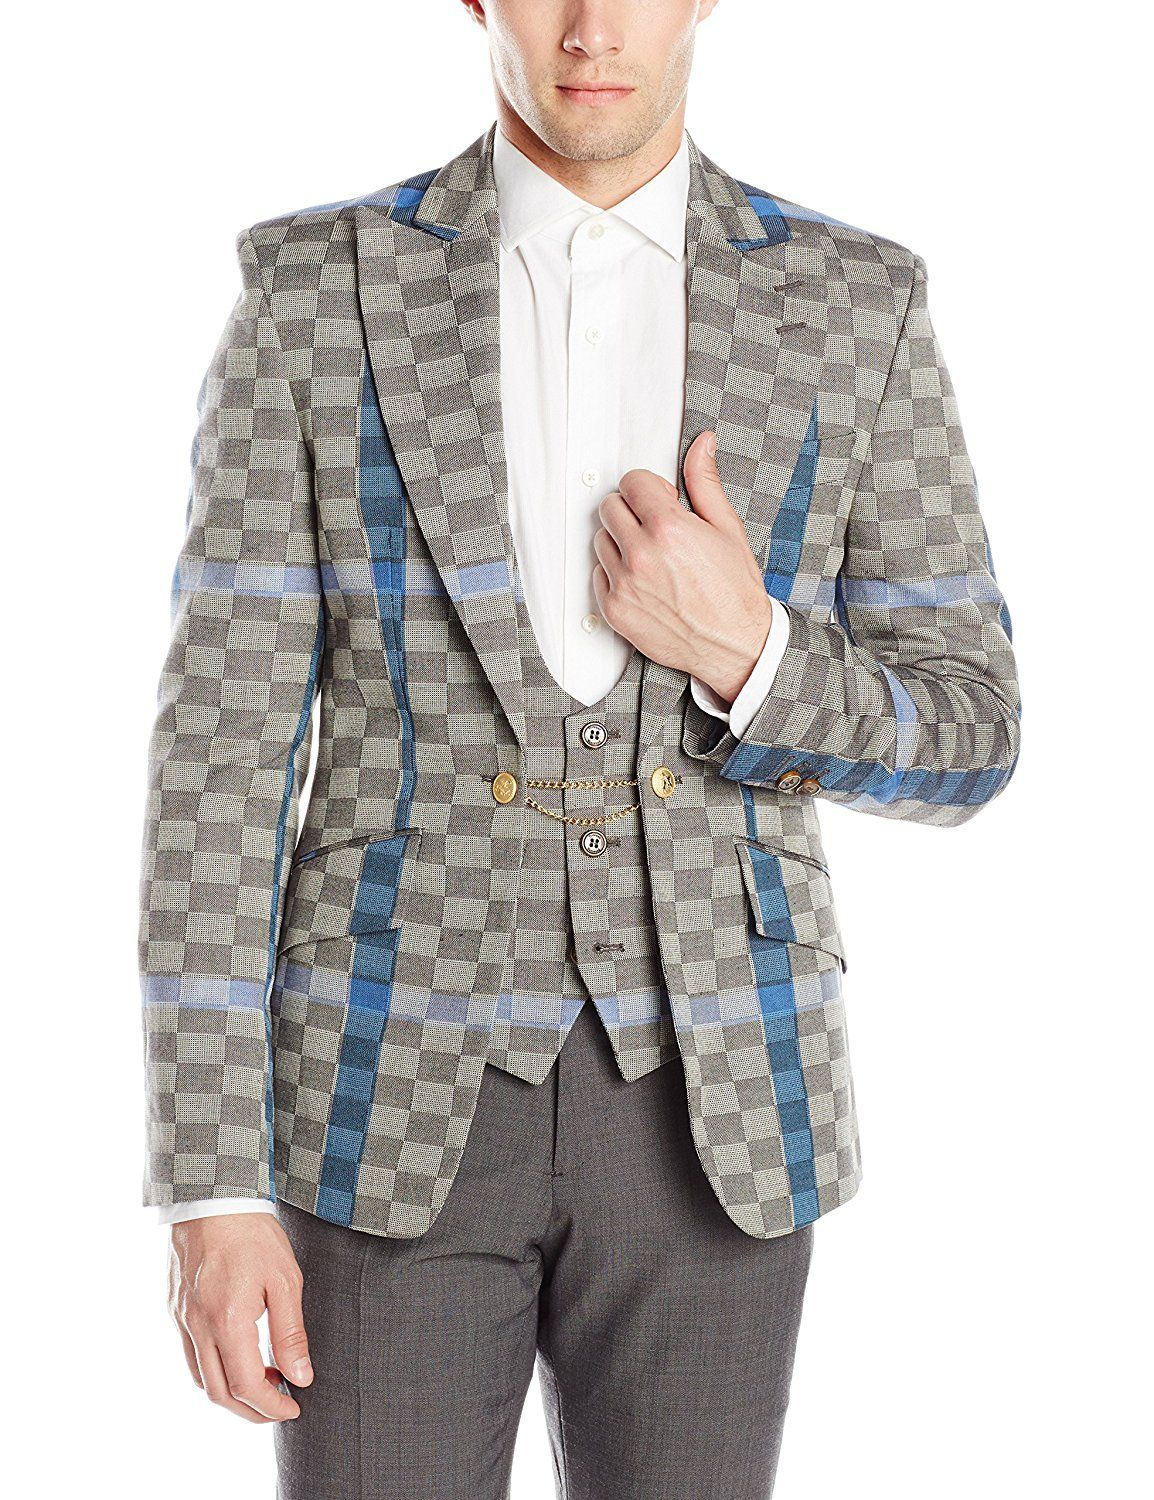 Amazon.com: Vivienne Westwood Men's Basketweave Check Waistcoat Jacket: Clothing